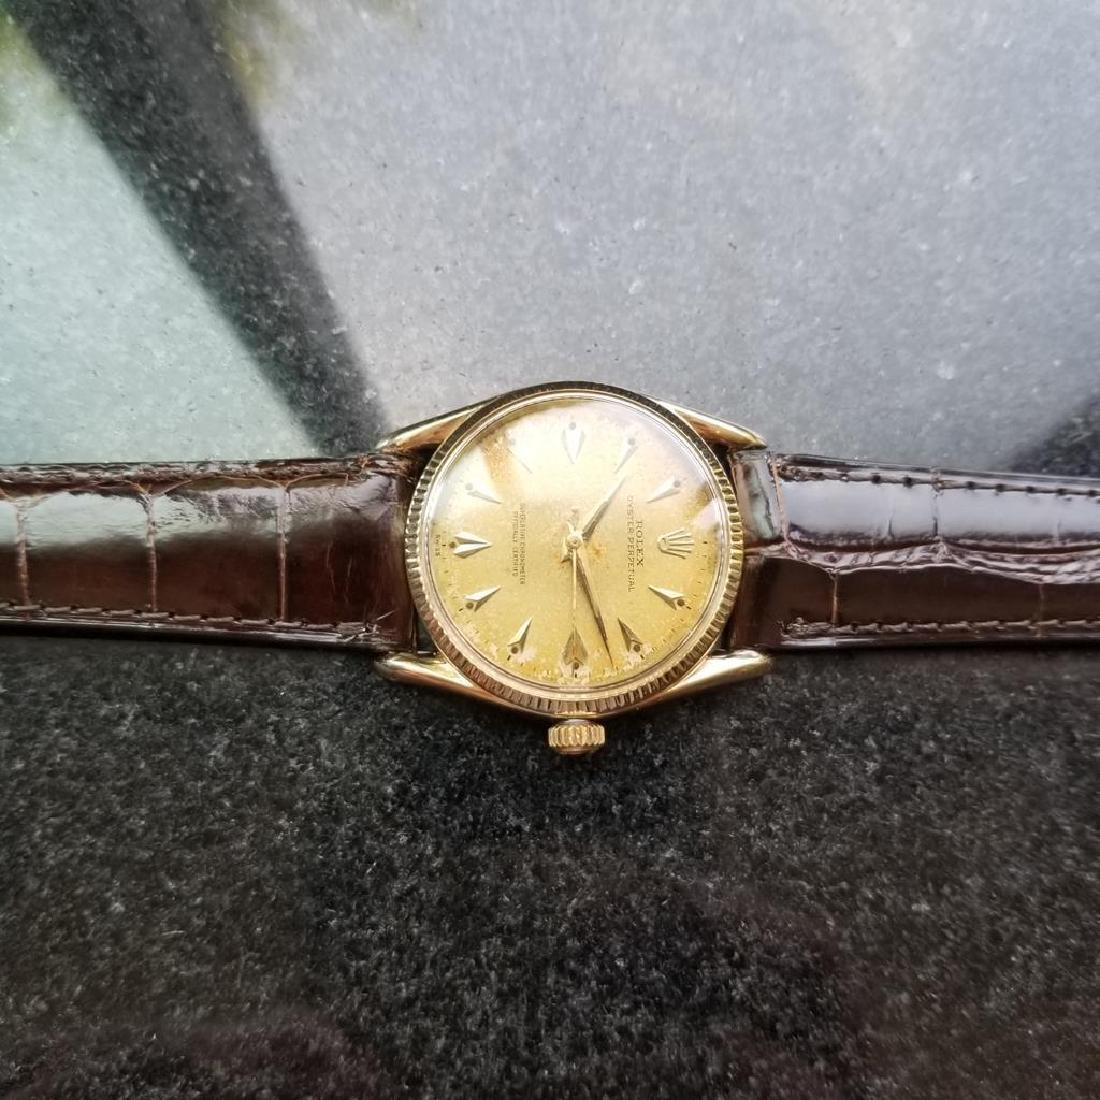 ROLEX Men's 14K Gold Oyster Perpetual 1011 Bombay - 6